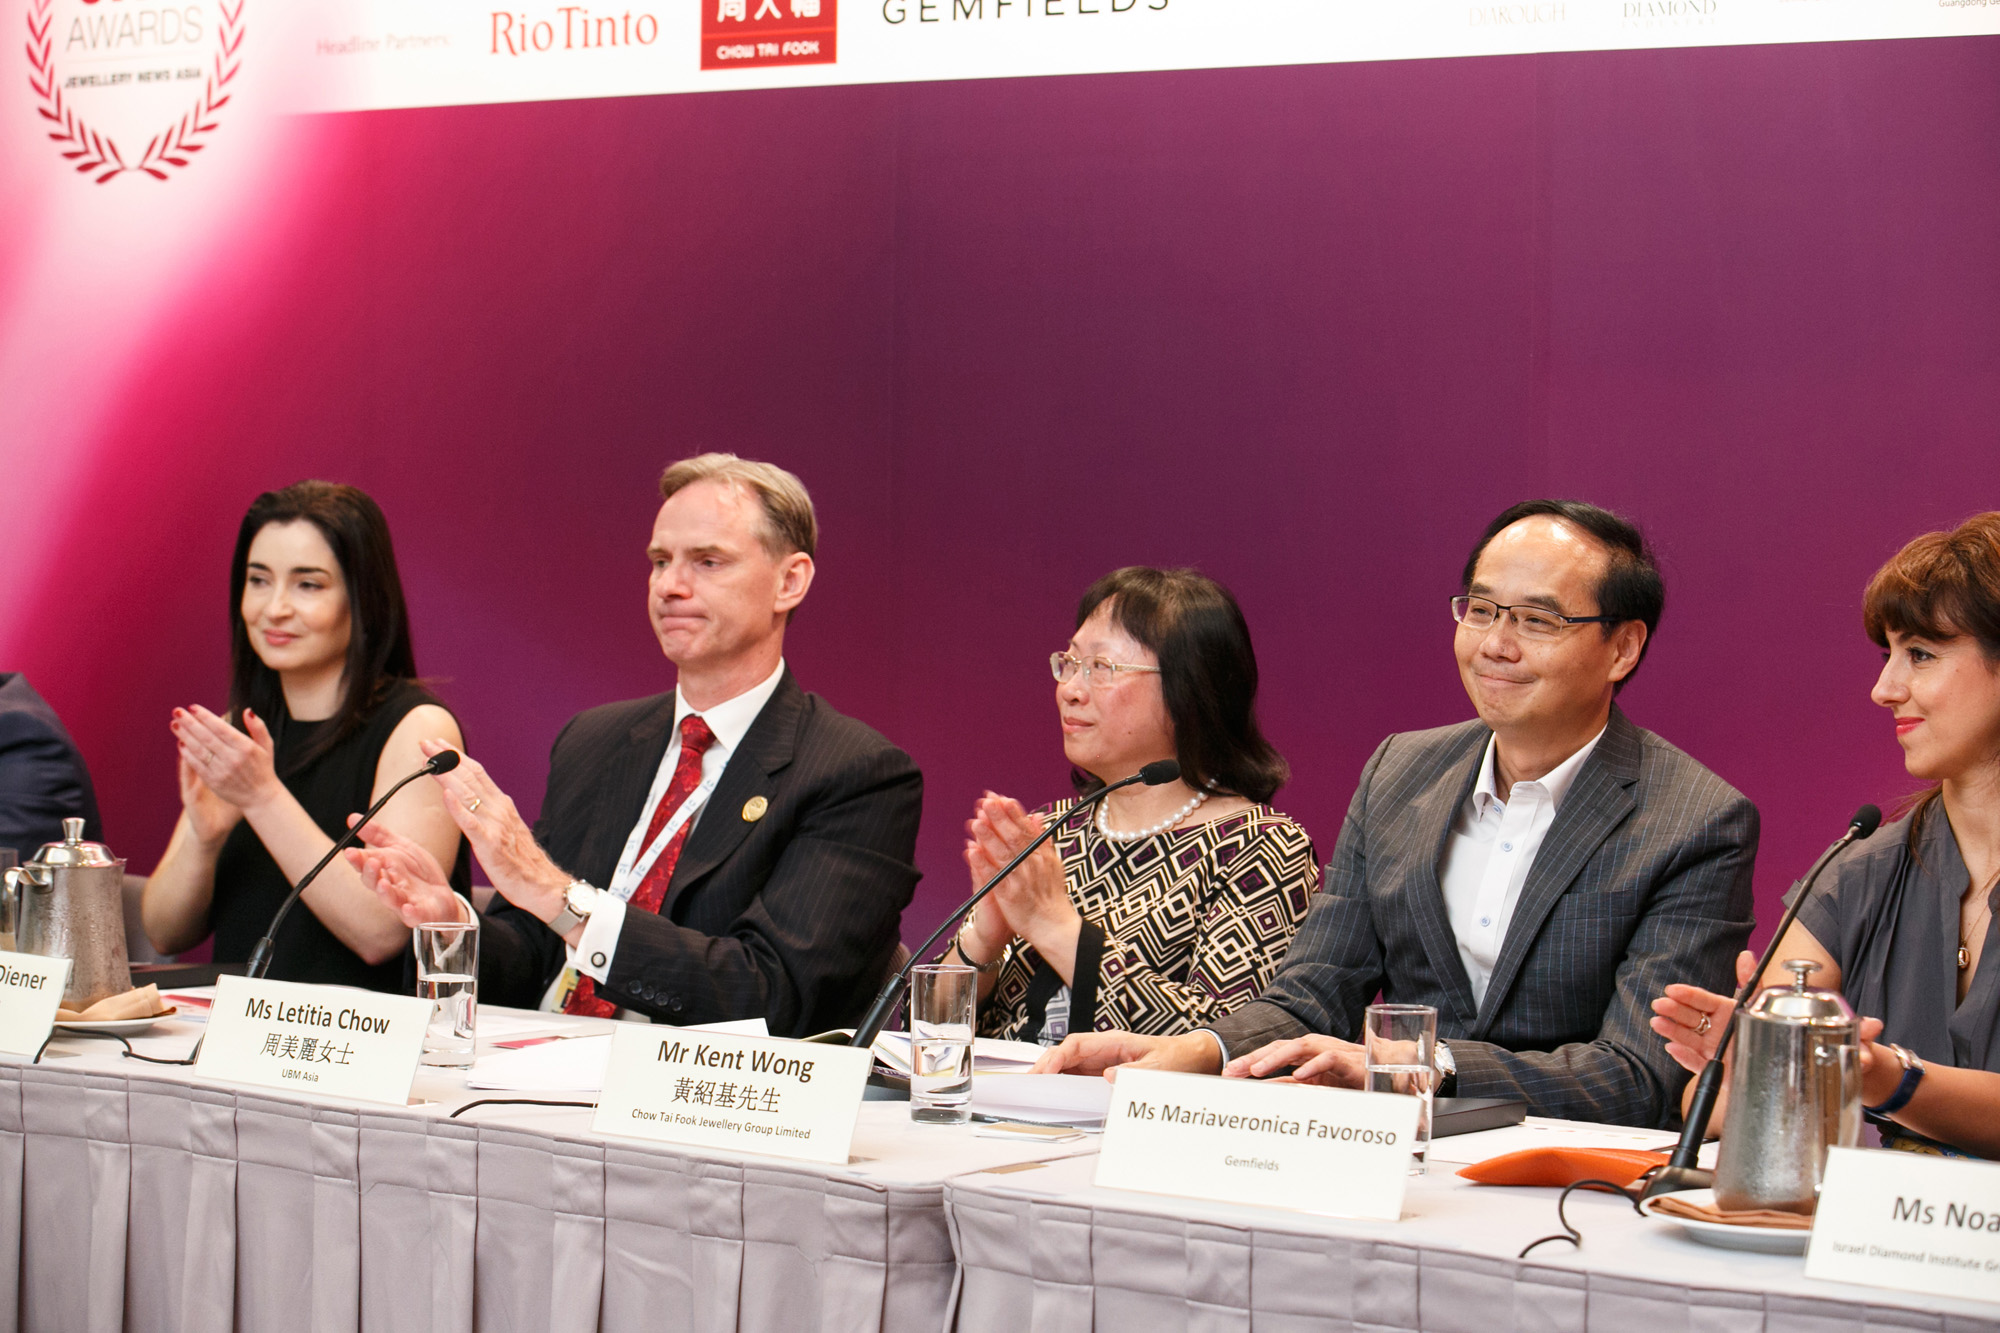 From L: Rita Maltez of Rio Tinto Diamonds, Wolfram Diener and Letitia Chow of UBM Asia, Kent Wong of Chow Tai Fook Jewellery Group and Mariaveronica Favoroso of Gemfields at the Honouree Announcement